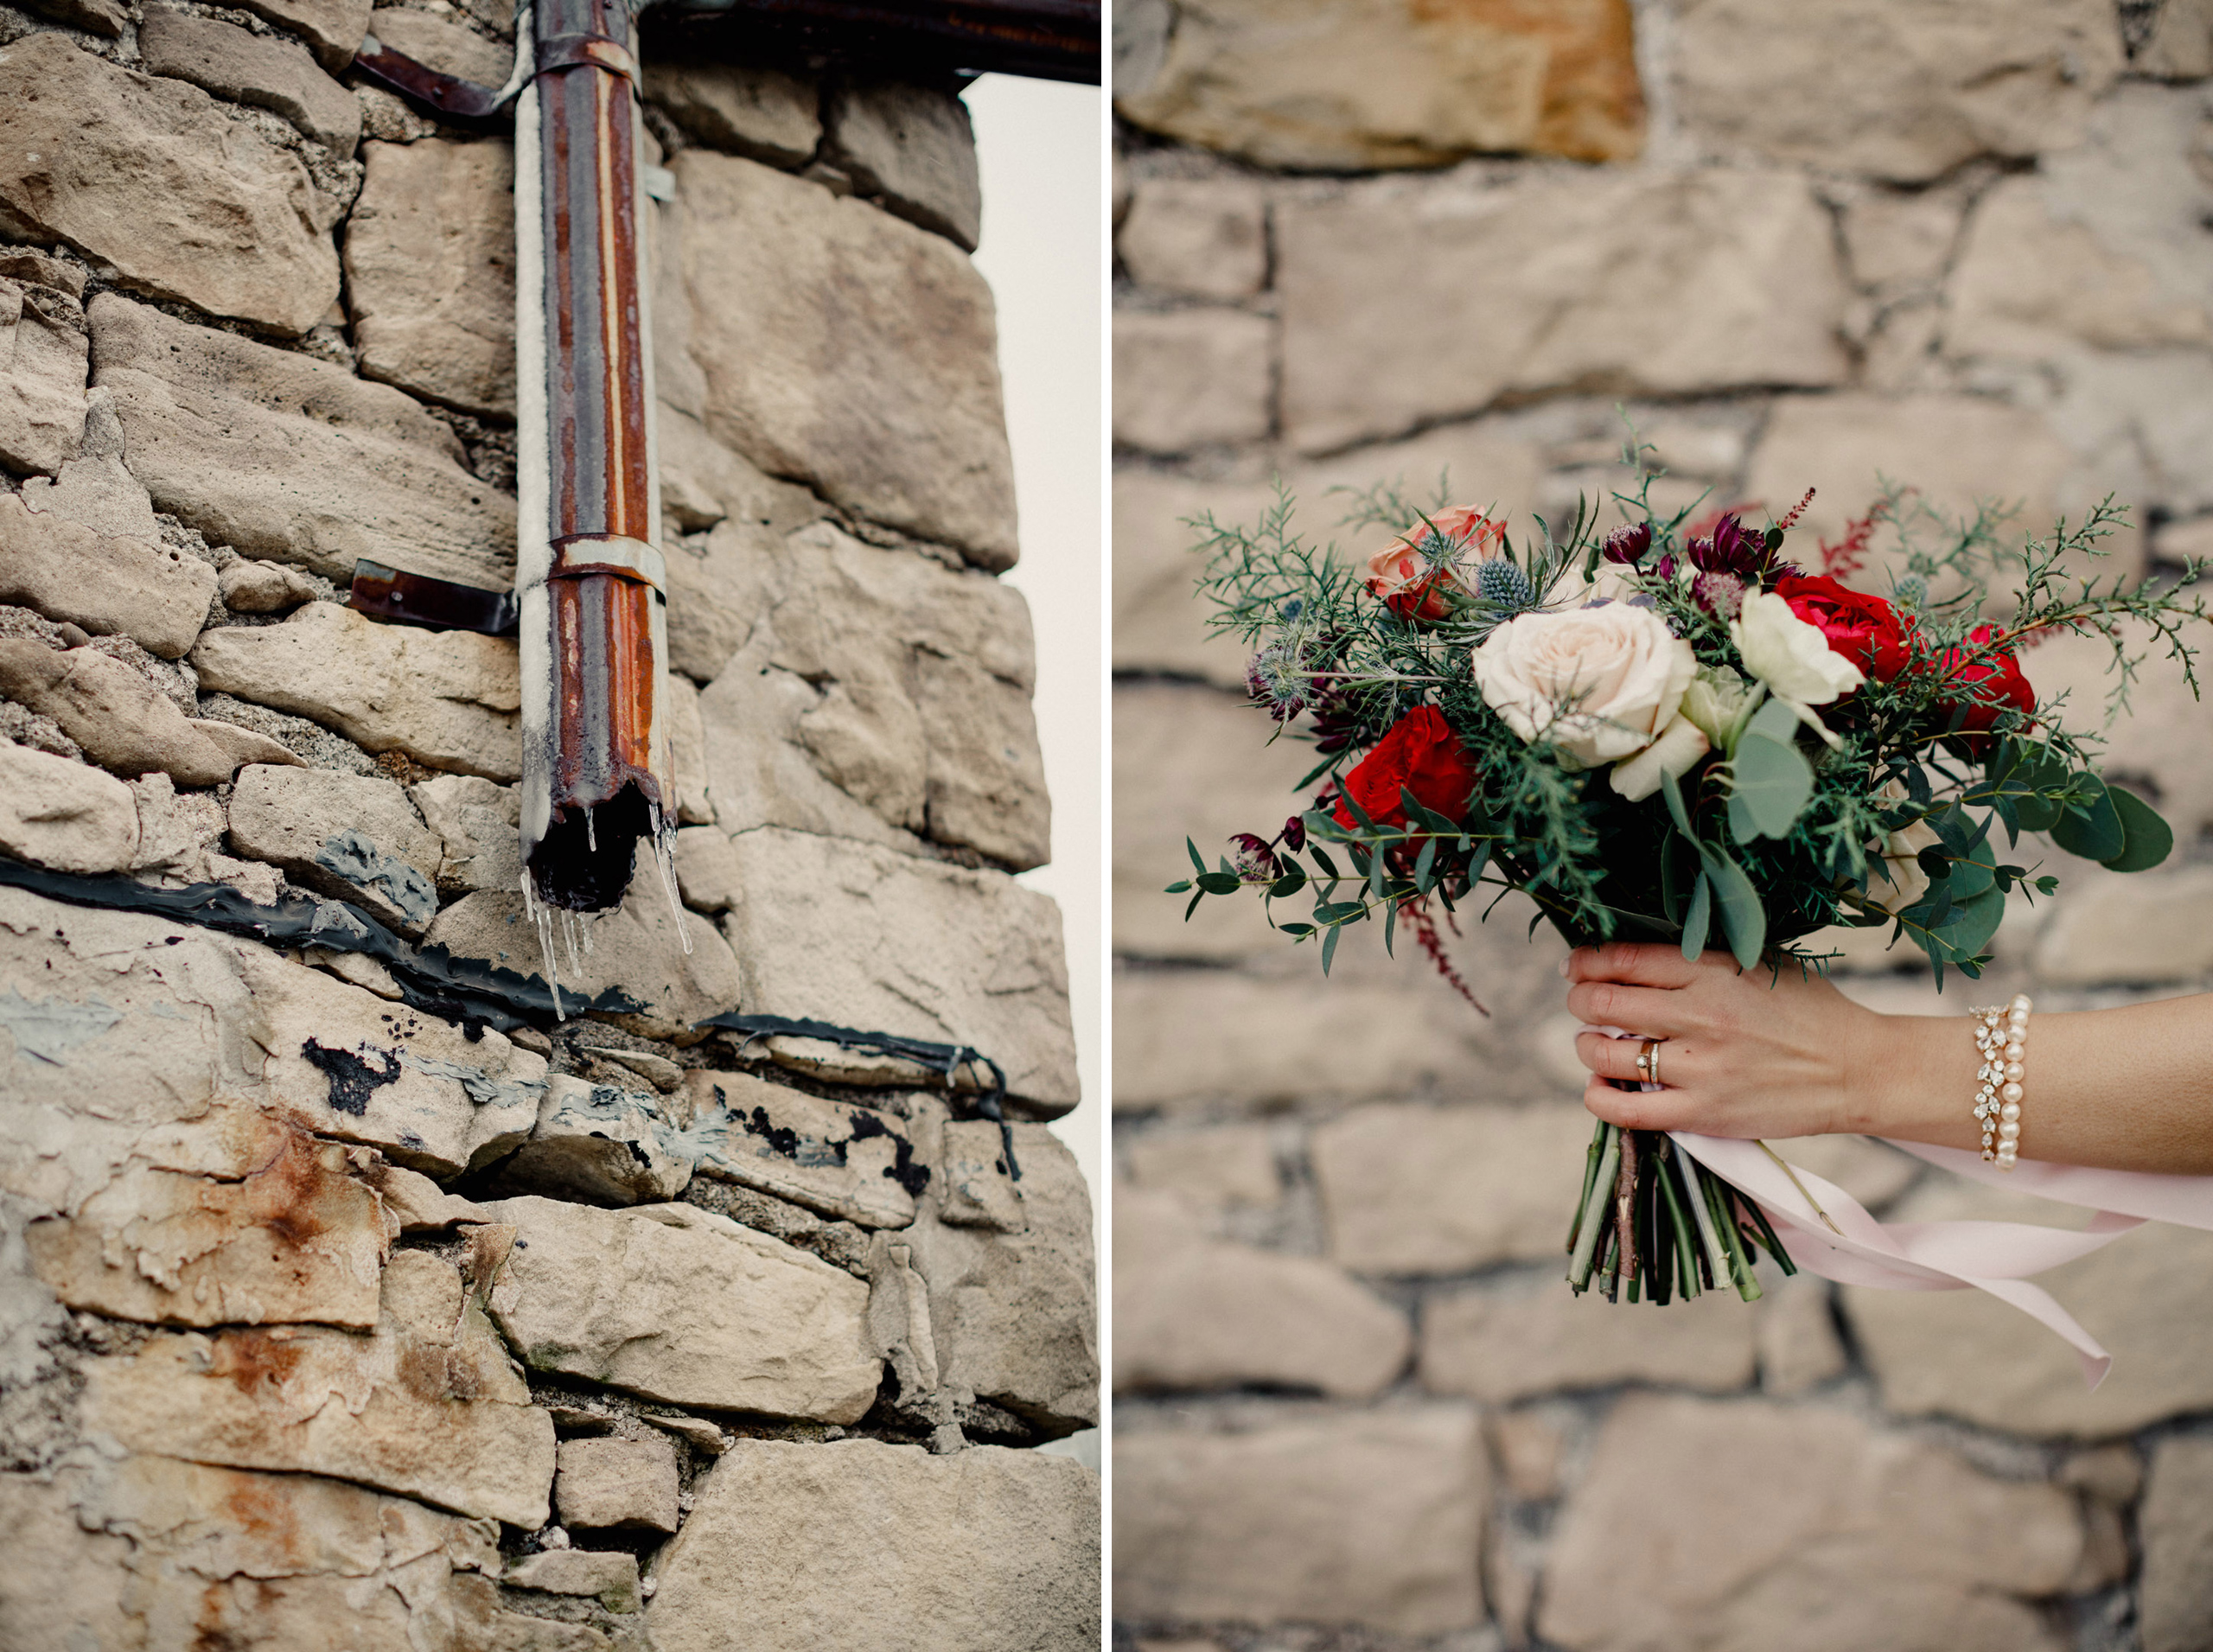 watering can flowers wedding bouquet bride cave spring vineland photographer